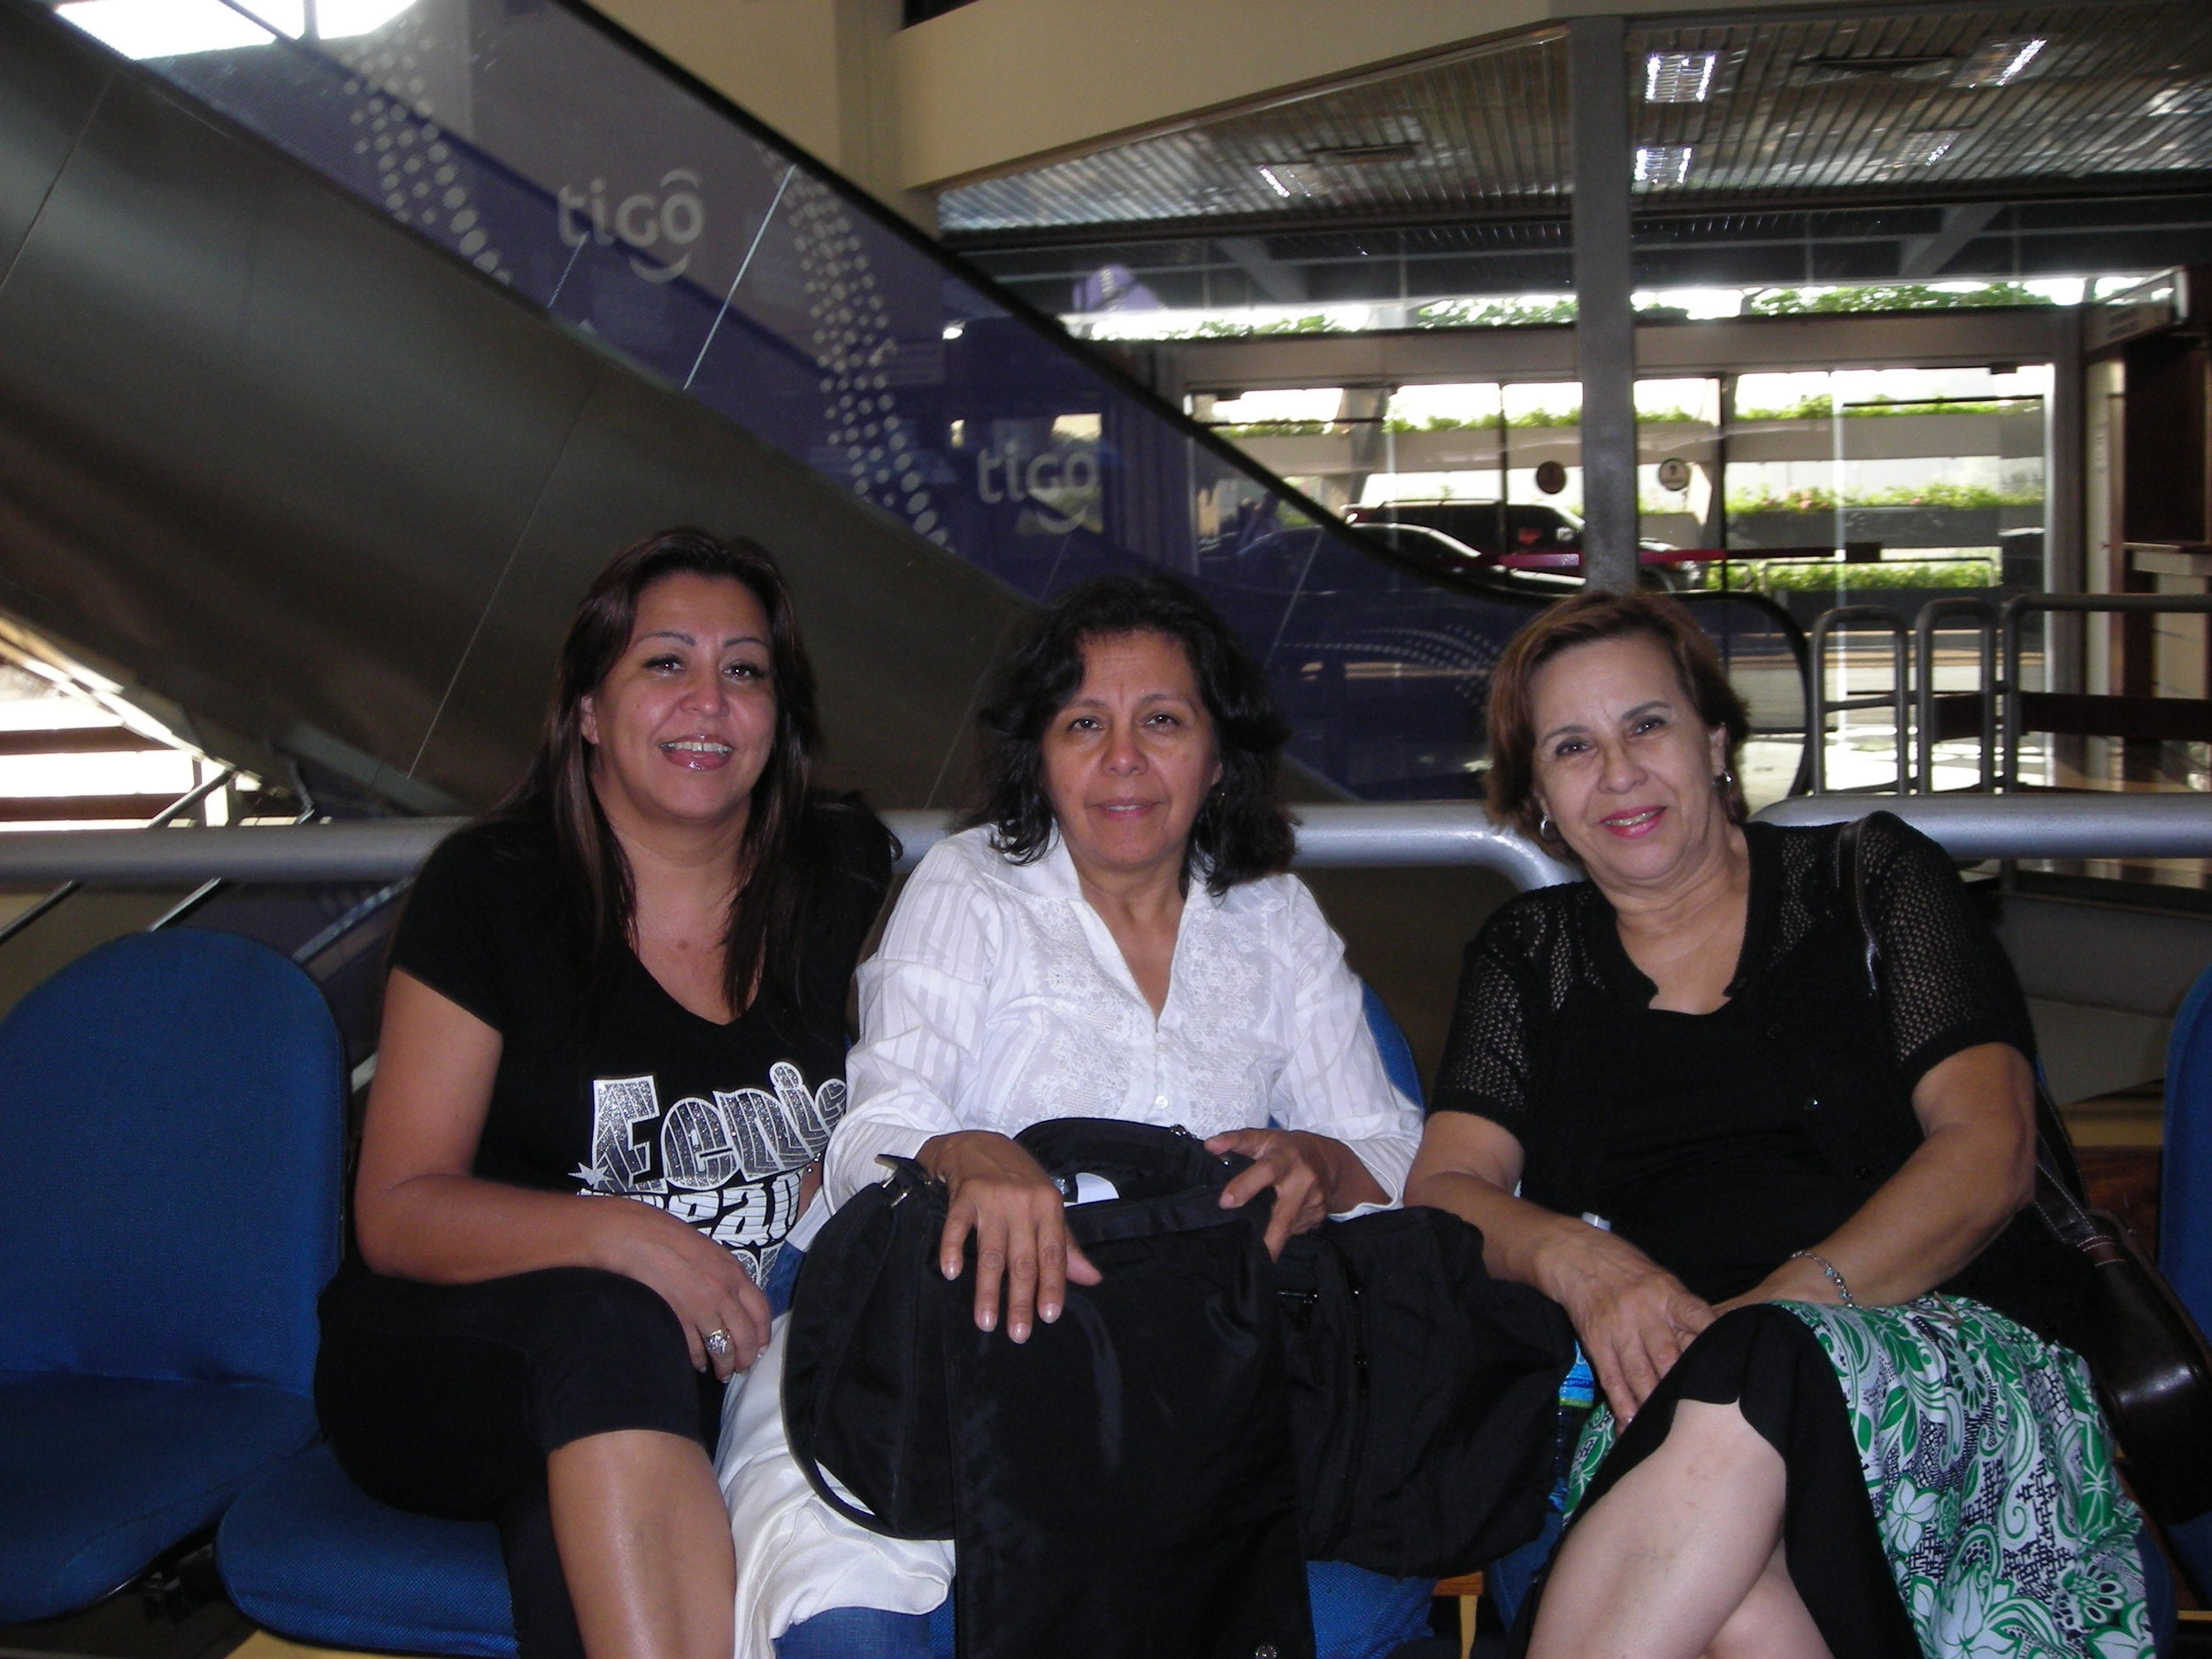 Mrs. Nunila Jimenez, Mrs. Felisa De Kler and Ms. Oliva Riva chatting as we said good bye and thanked Ms. Riva for her efforts of March 22-28, 2009